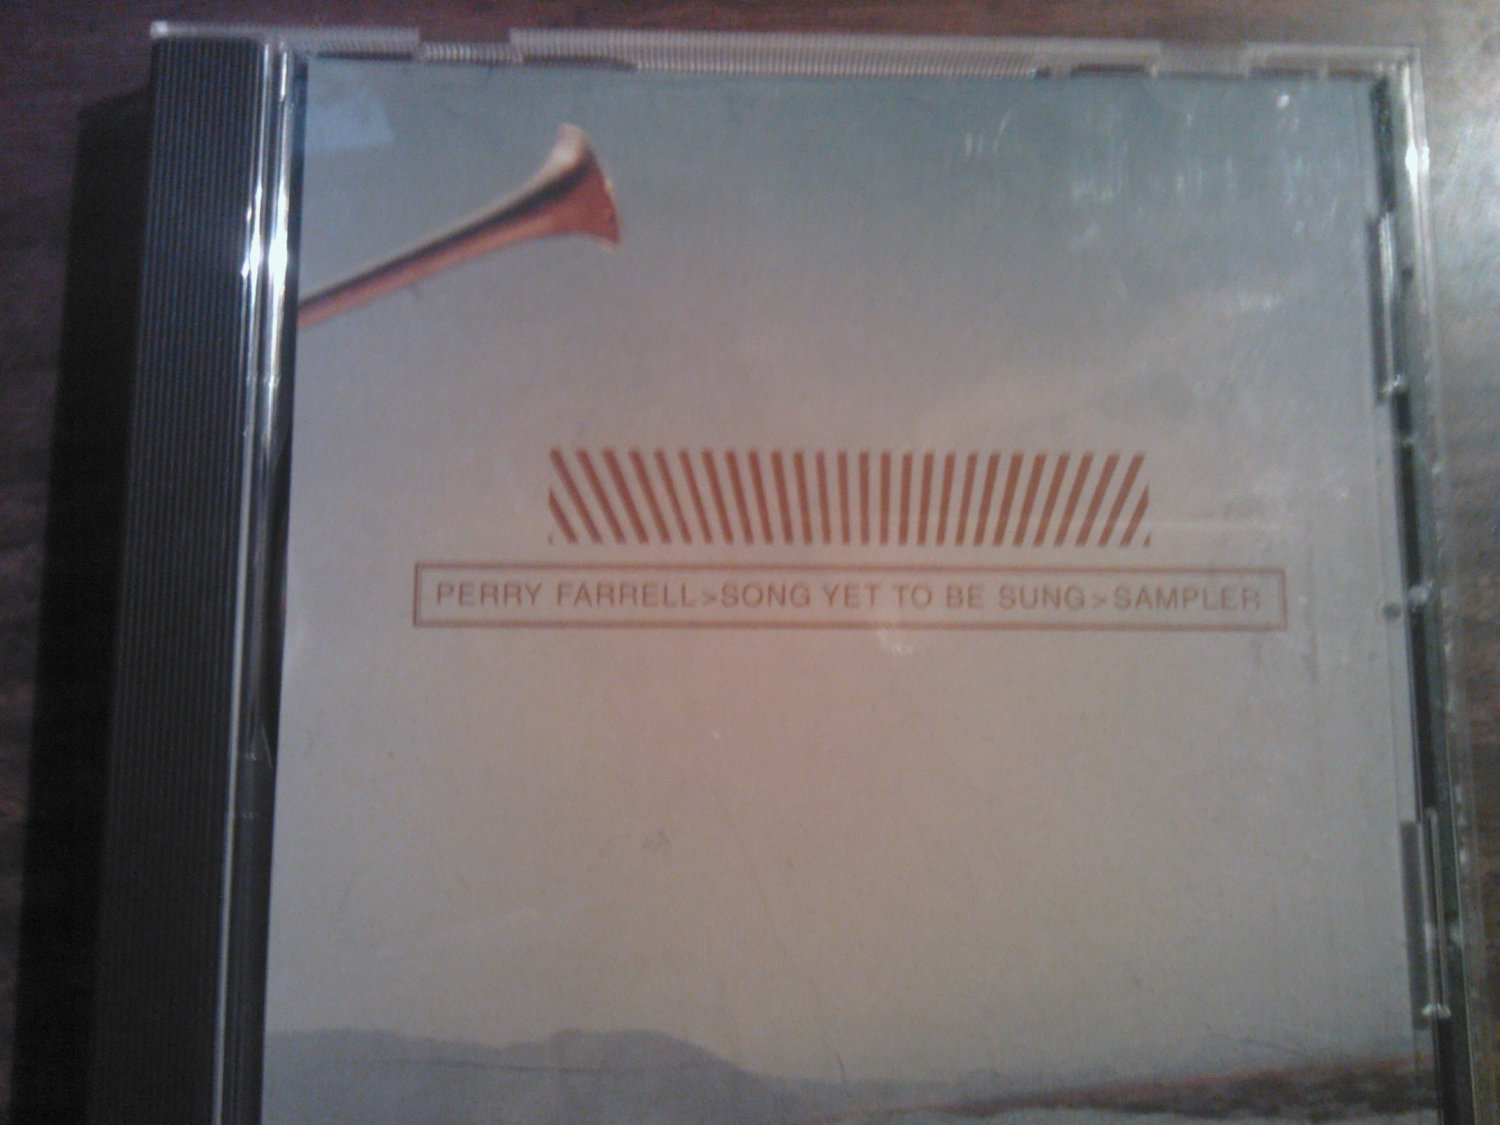 CD PERRY FARRELL Songs Yet To Be Sung sampler jane's addiction PROMO